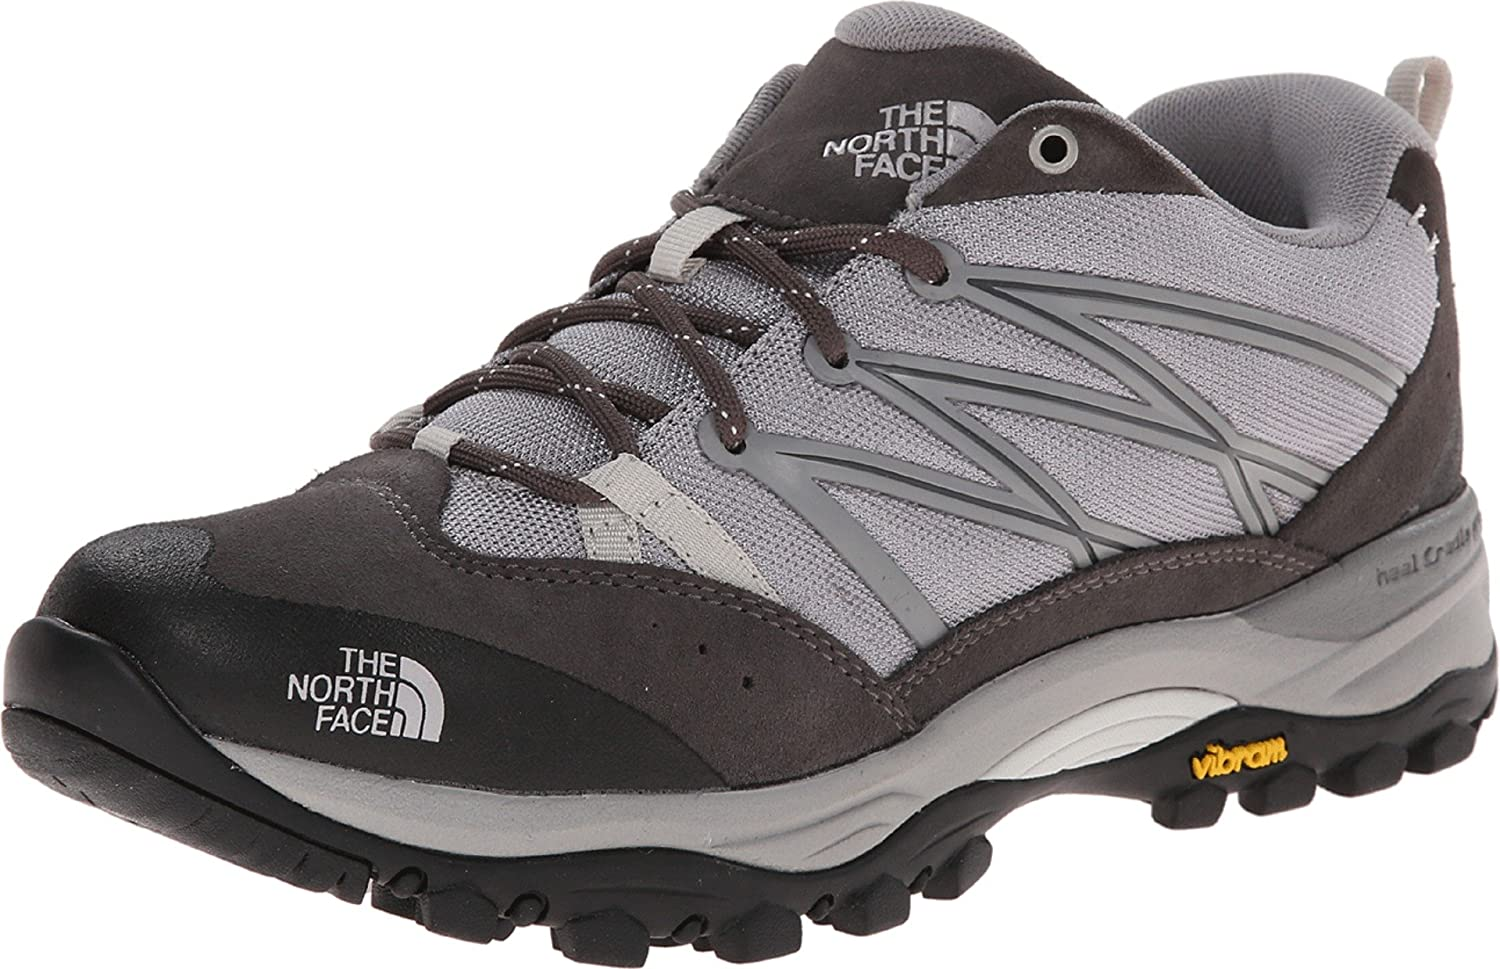 The North Face CDM4 Storm Ii - FOOTWEAR  WOMEN'S FOOTWEAR  WOMEN'S TRAIL shoes